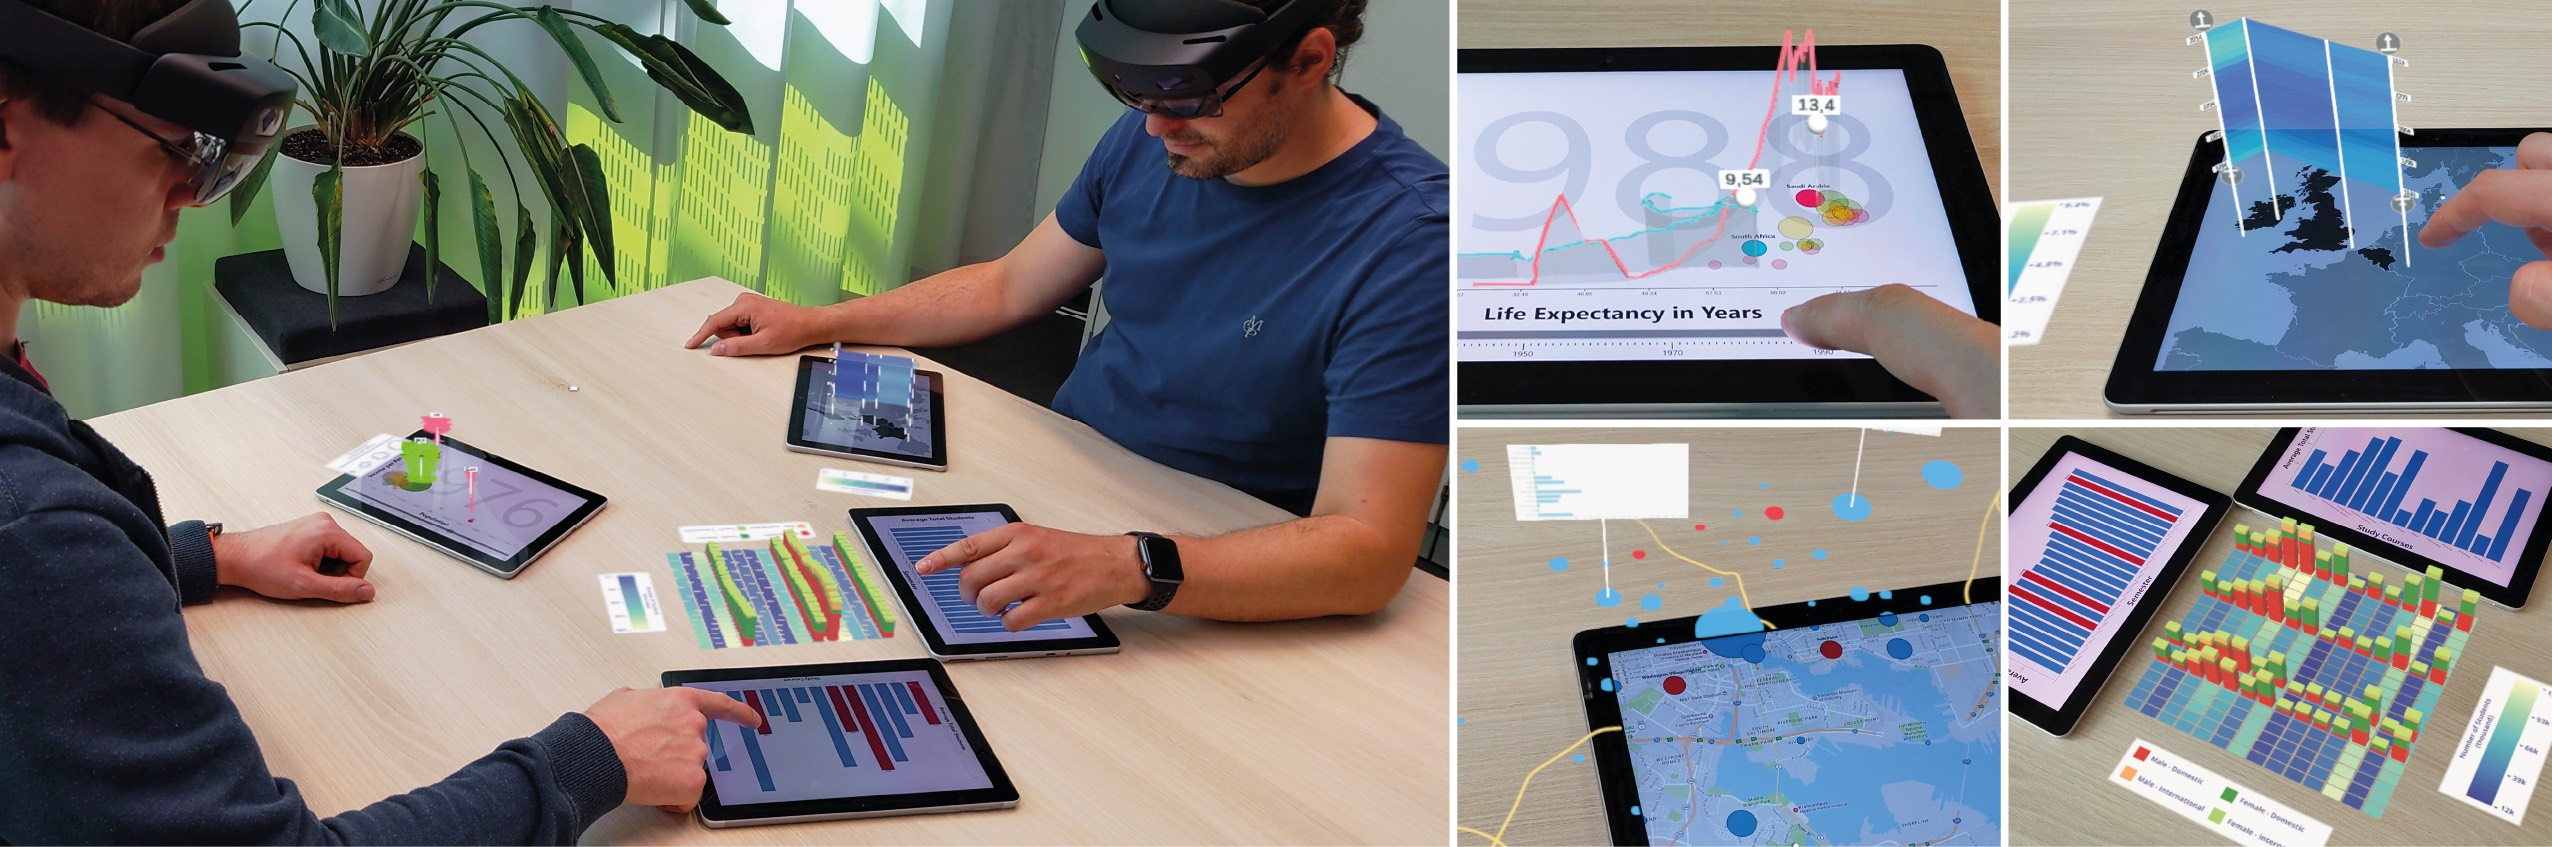 MARVIS: Combining Mobile Devices and Augmented Reality for Visual Data Analysis